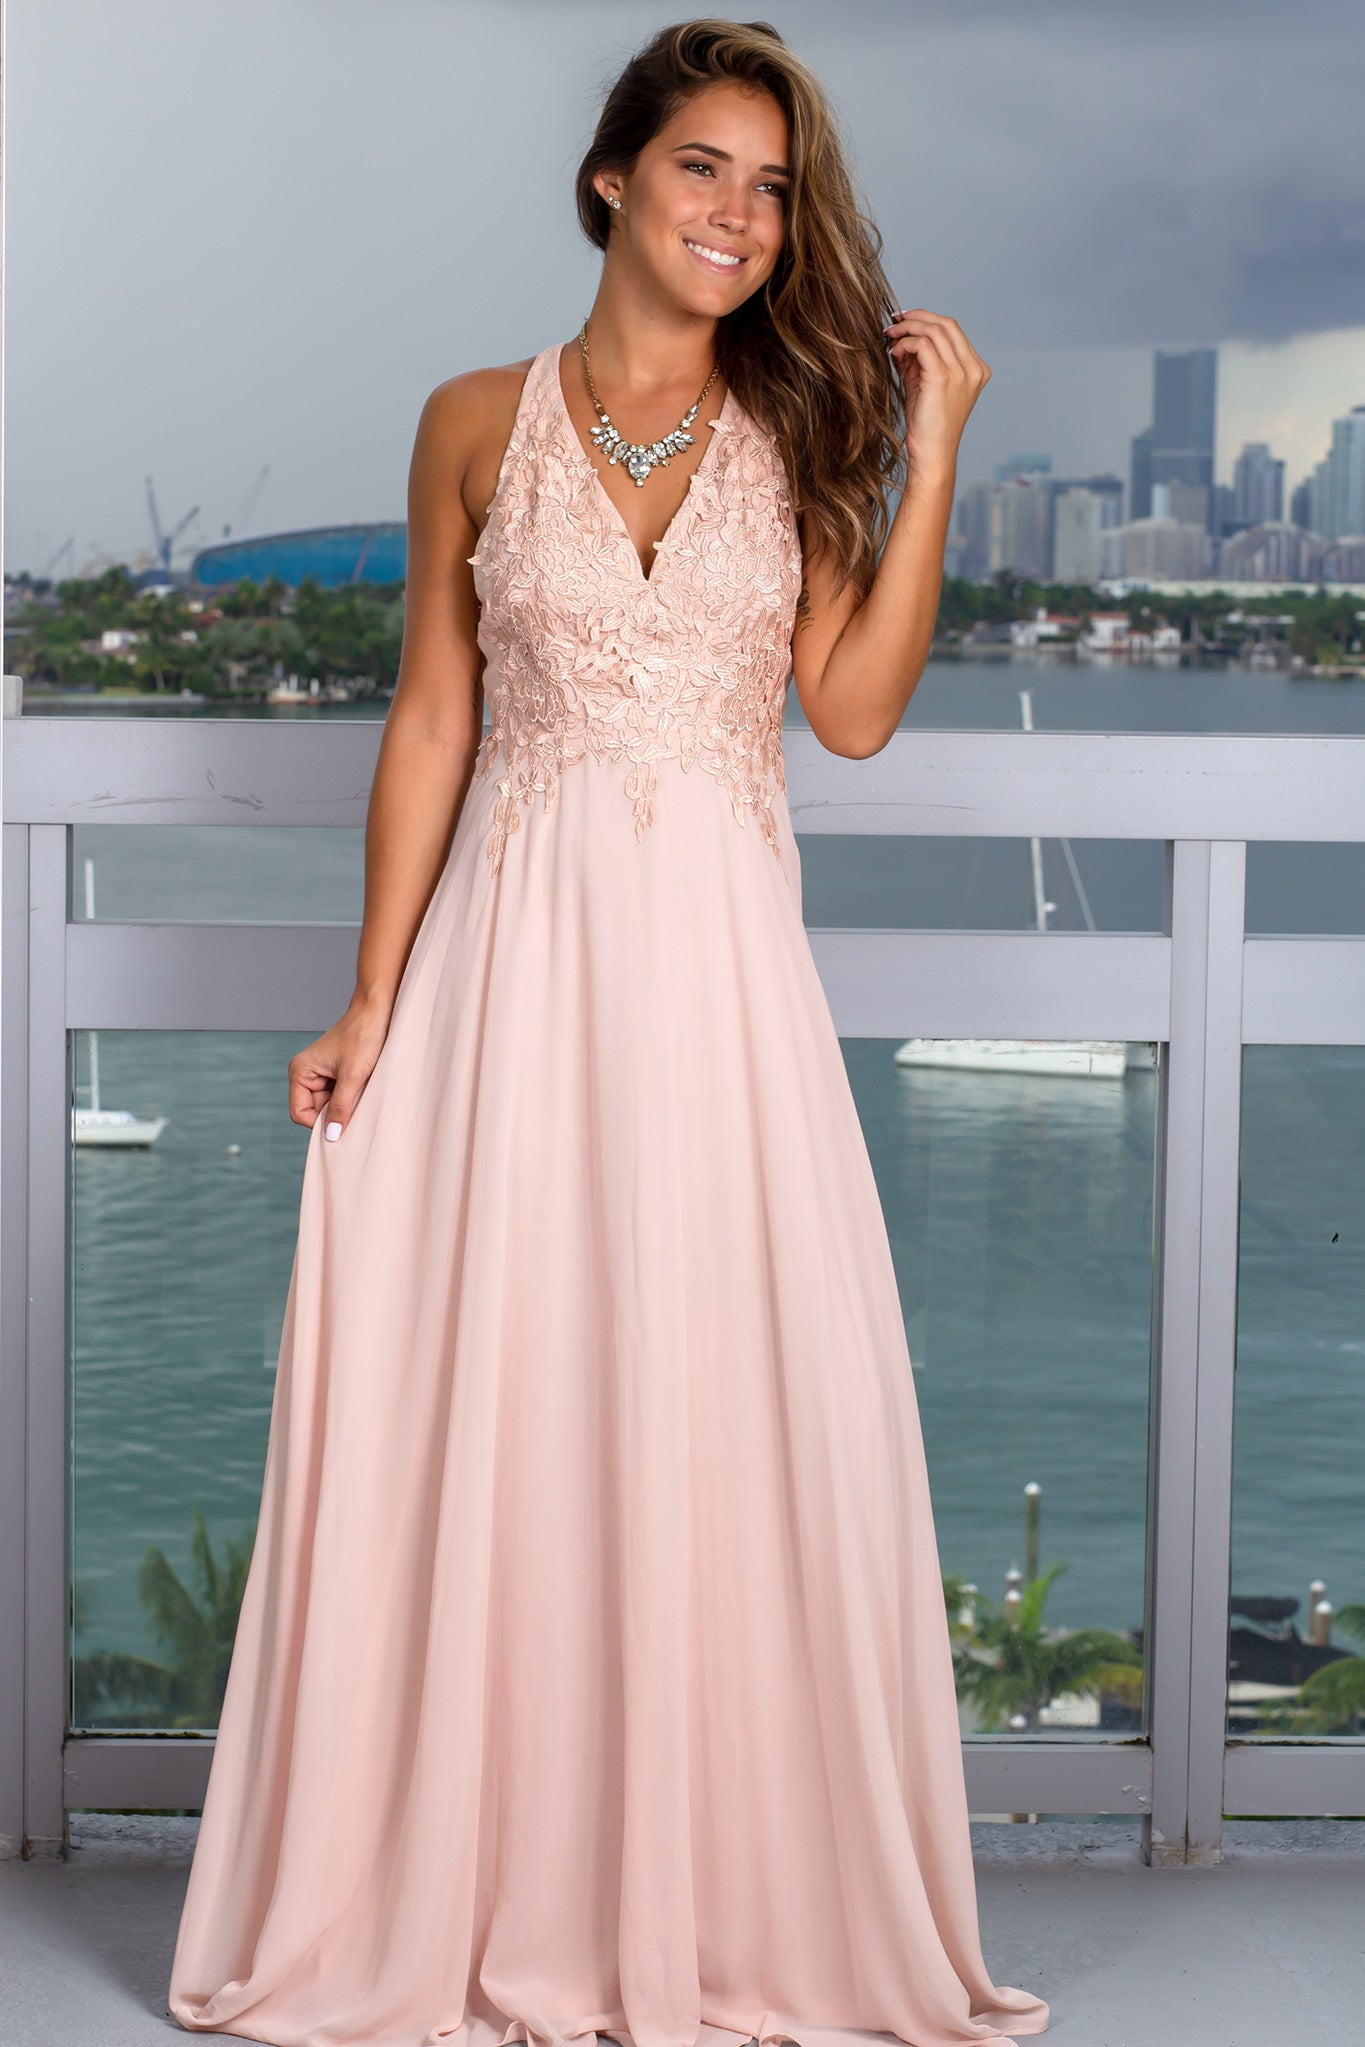 Blush Maxi Dress with Embroidered Top and Criss Cross Back